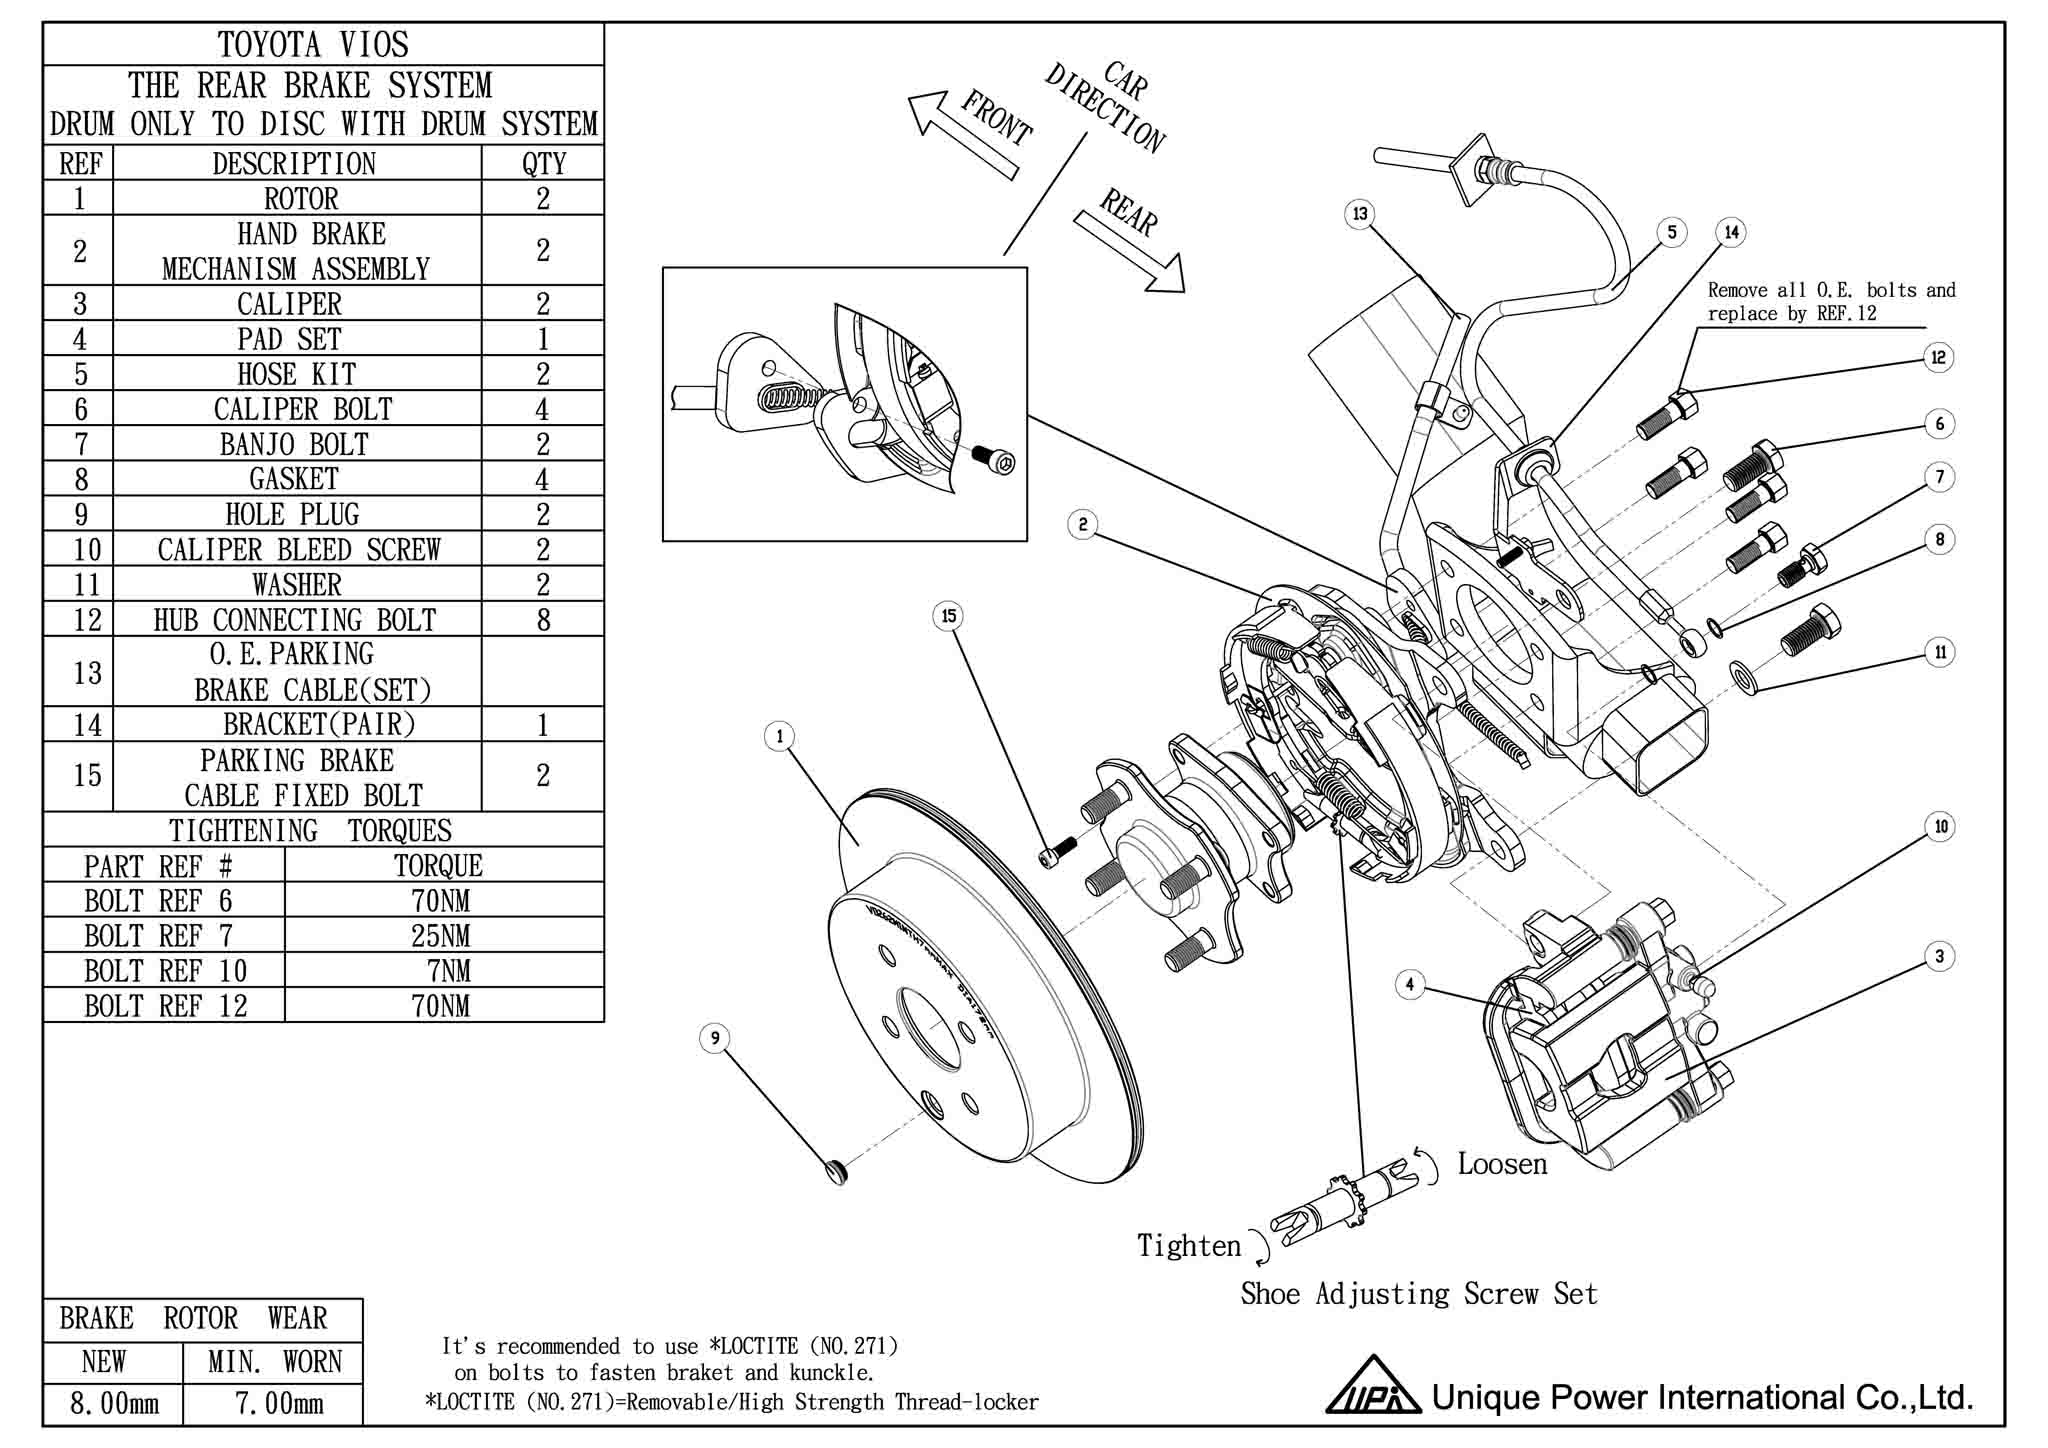 Replace Blower   T580468 as well 2007 Mitsubishi Lancer Fuse Box Diagram besides Nissan 2004 350z Headlight Wiring Diagram furthermore Infiniti I30 Front Suspension Diagram as well Tundra Wiring Harness Wiring Diagrams. on infiniti fx35 radio wiring diagram